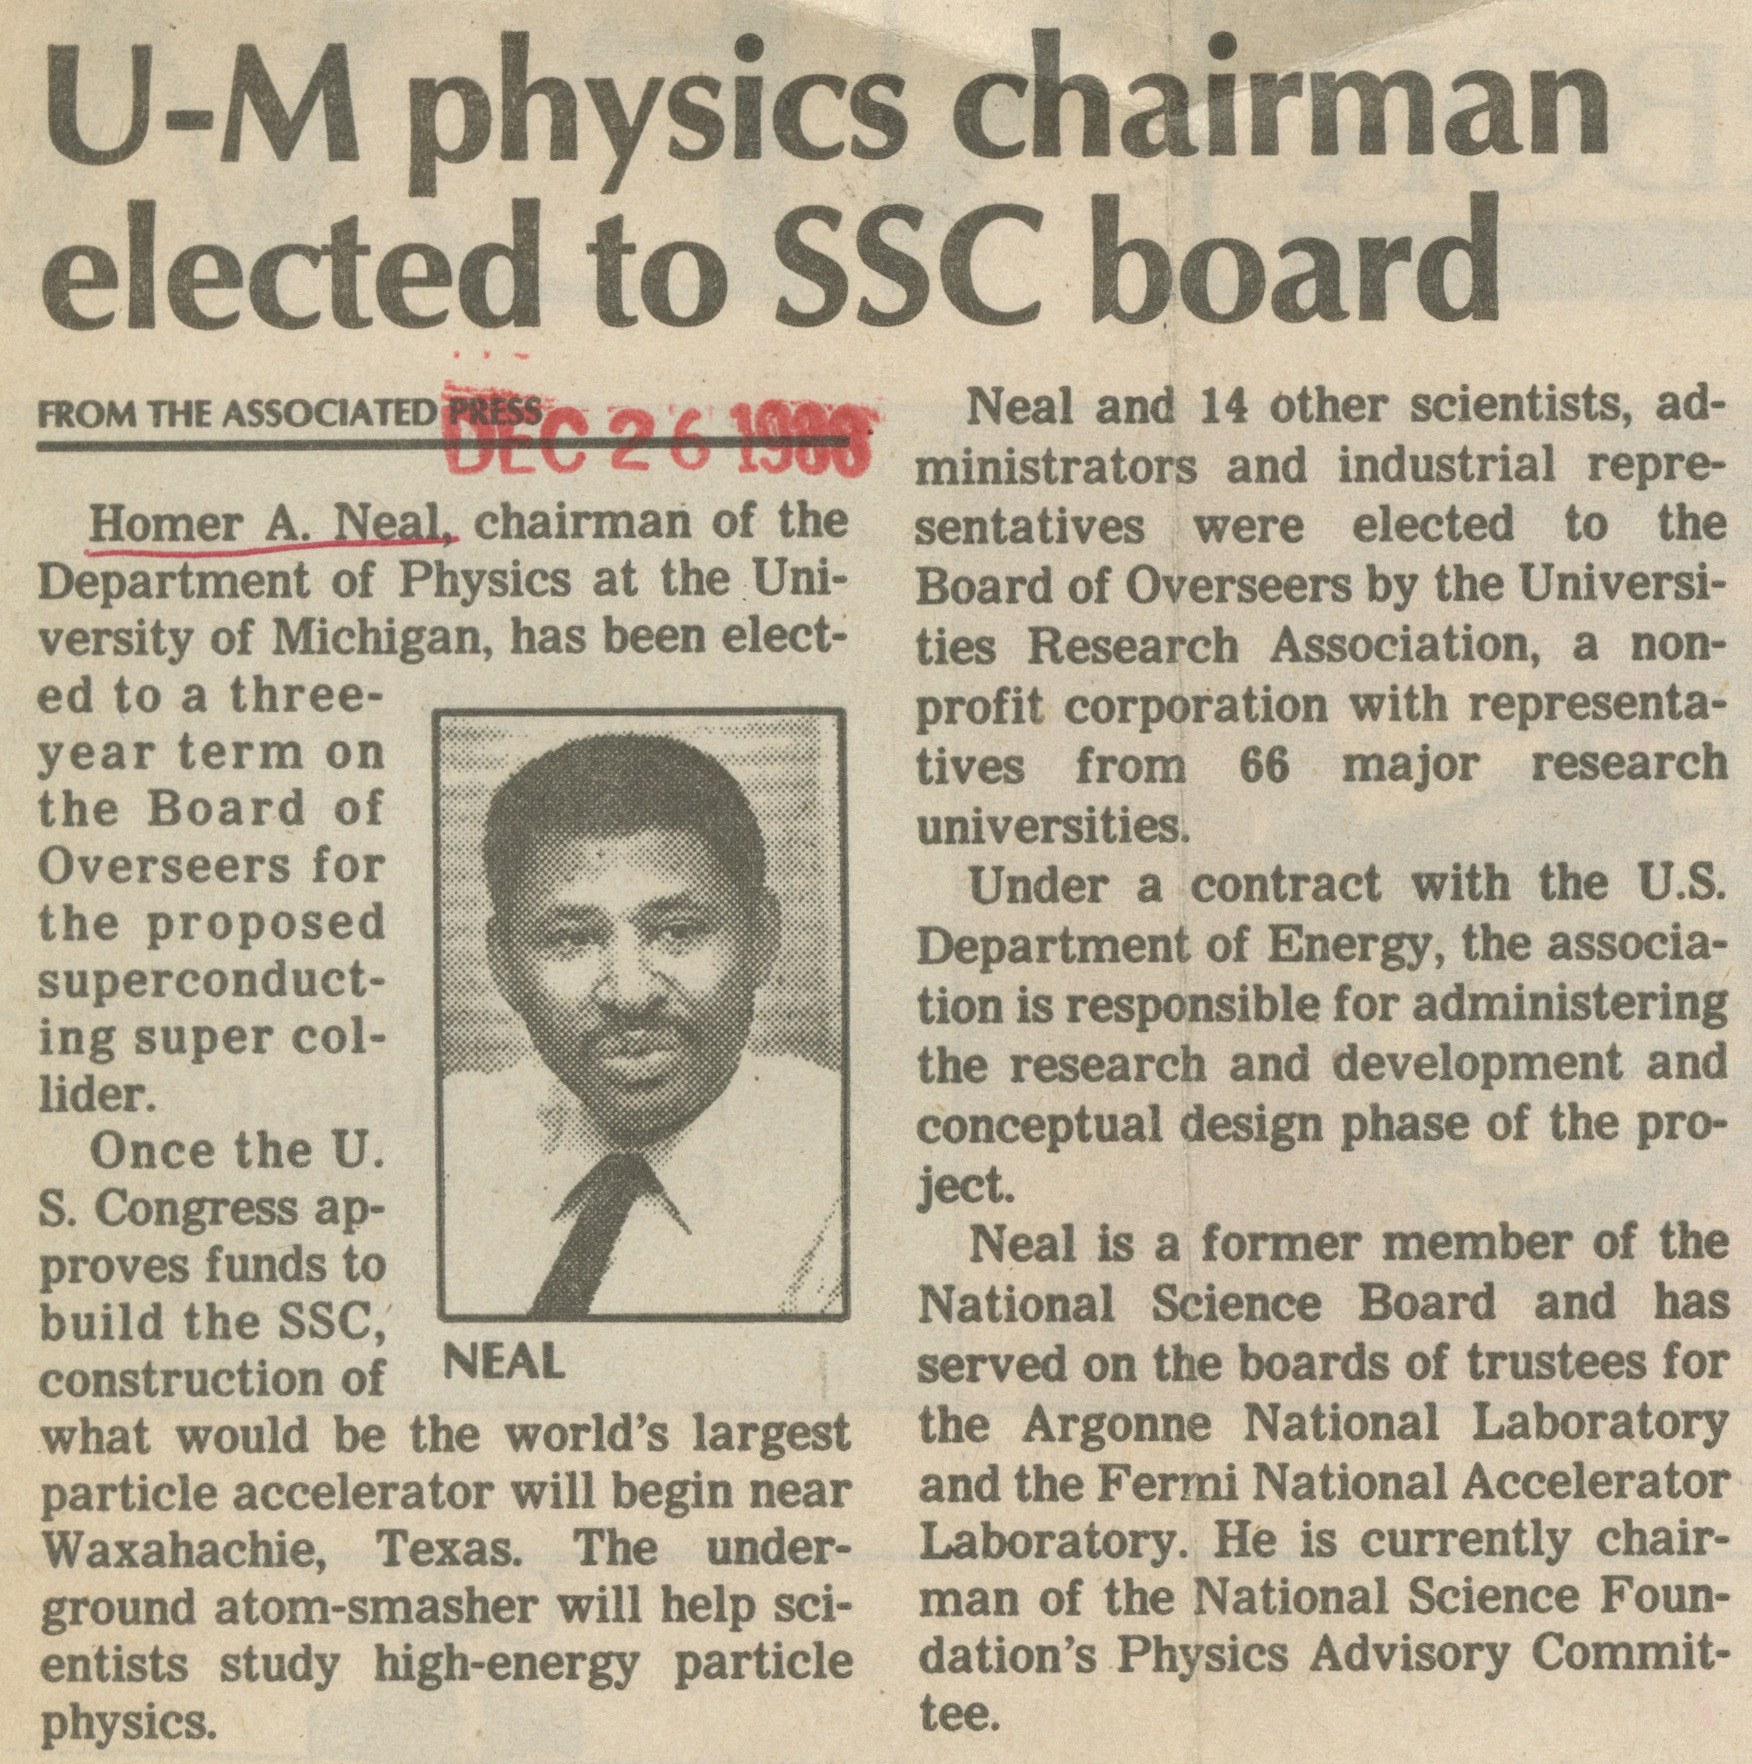 U-M Physics Chairman Elected To SSC Board image